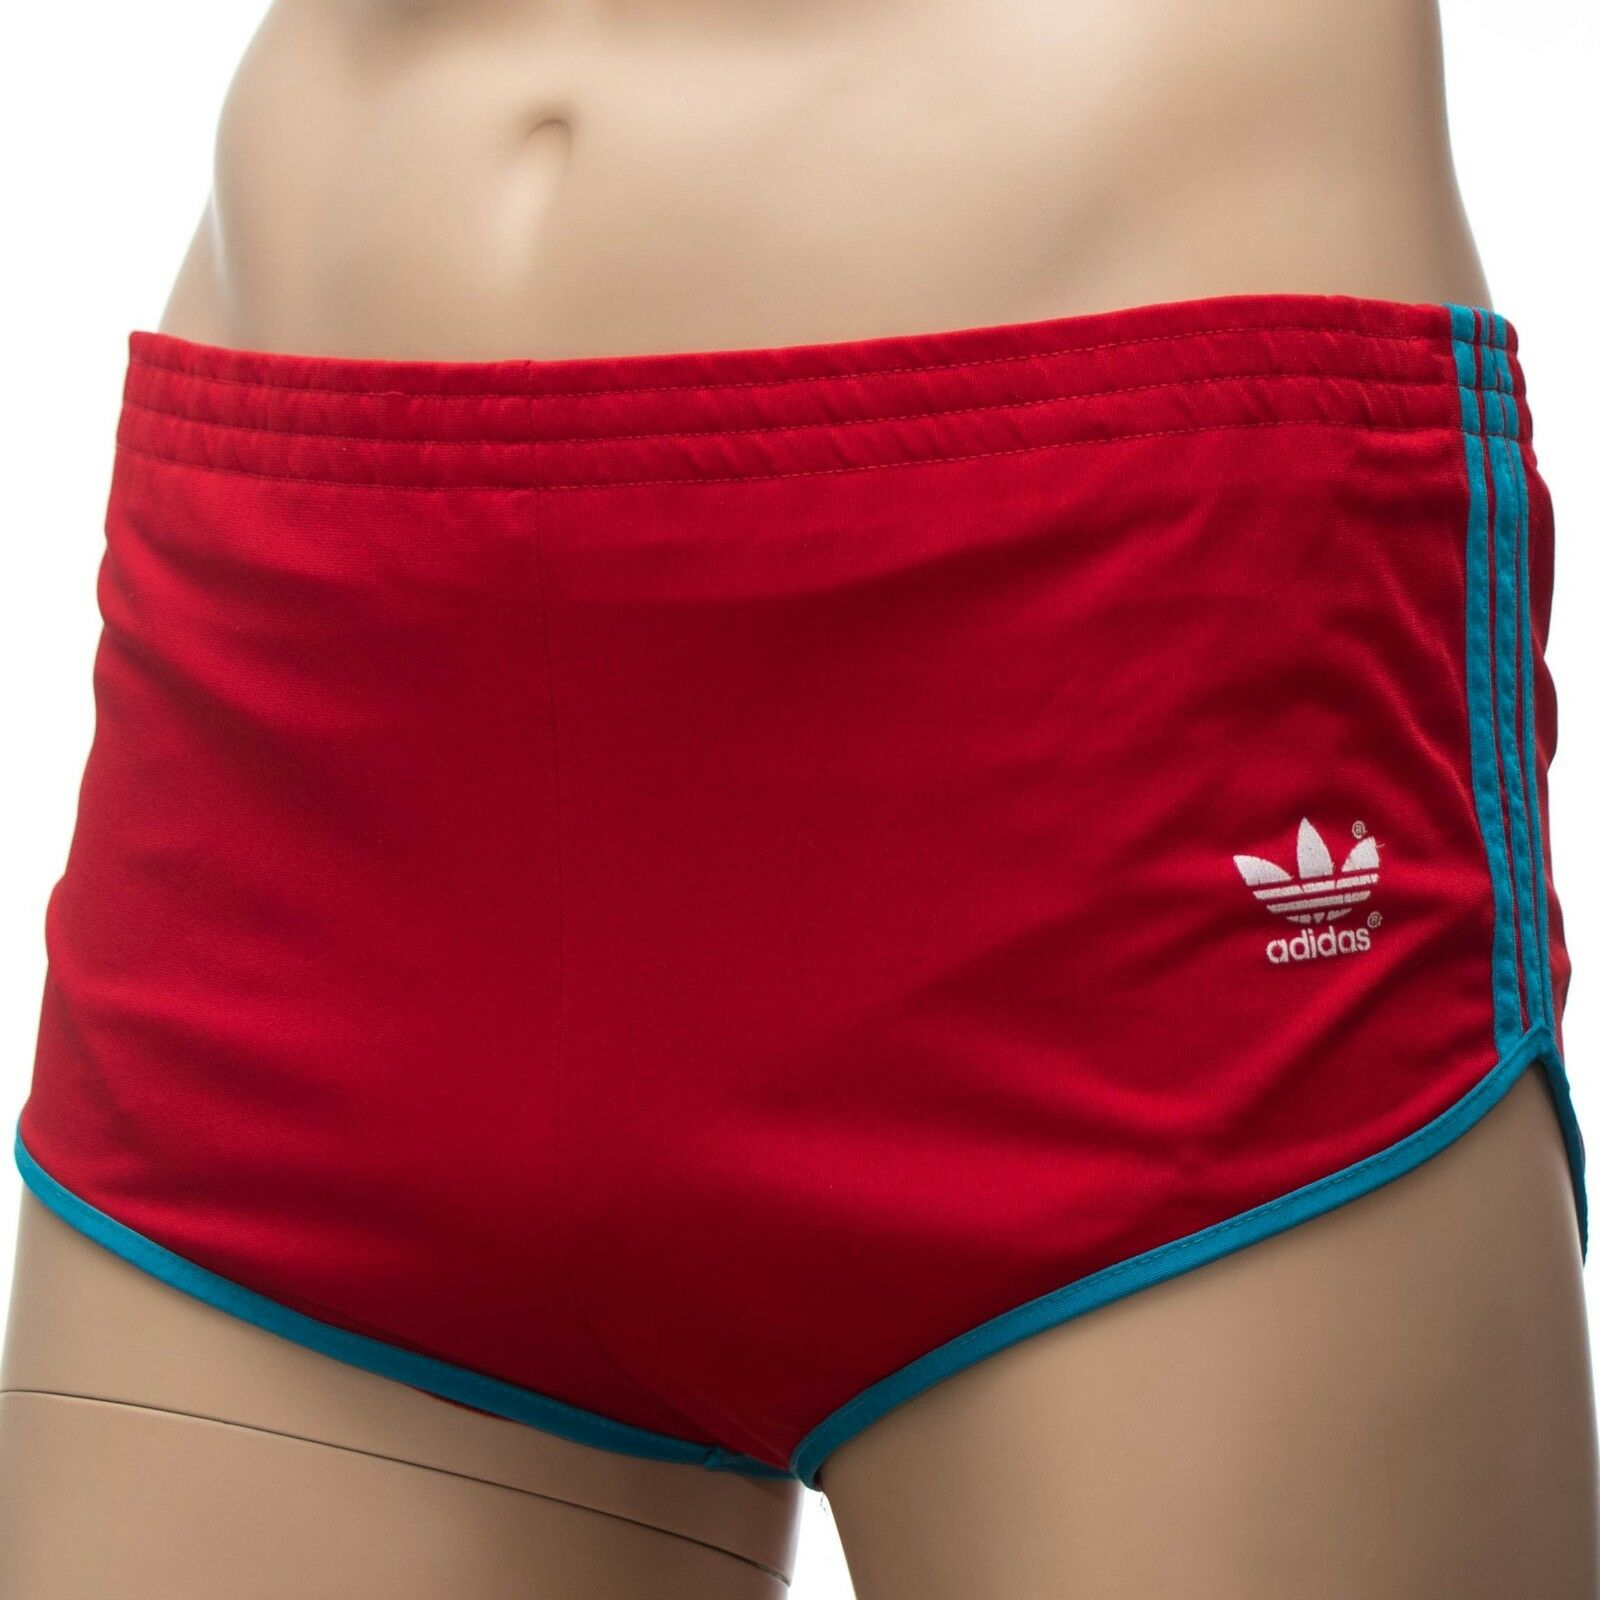 RAR ADIDAS Vintage Shorts Badehose Badehose Badehose - Made in W.Germany - rot rot  Gr 4 (1532)    Professionelles Design  19cd38